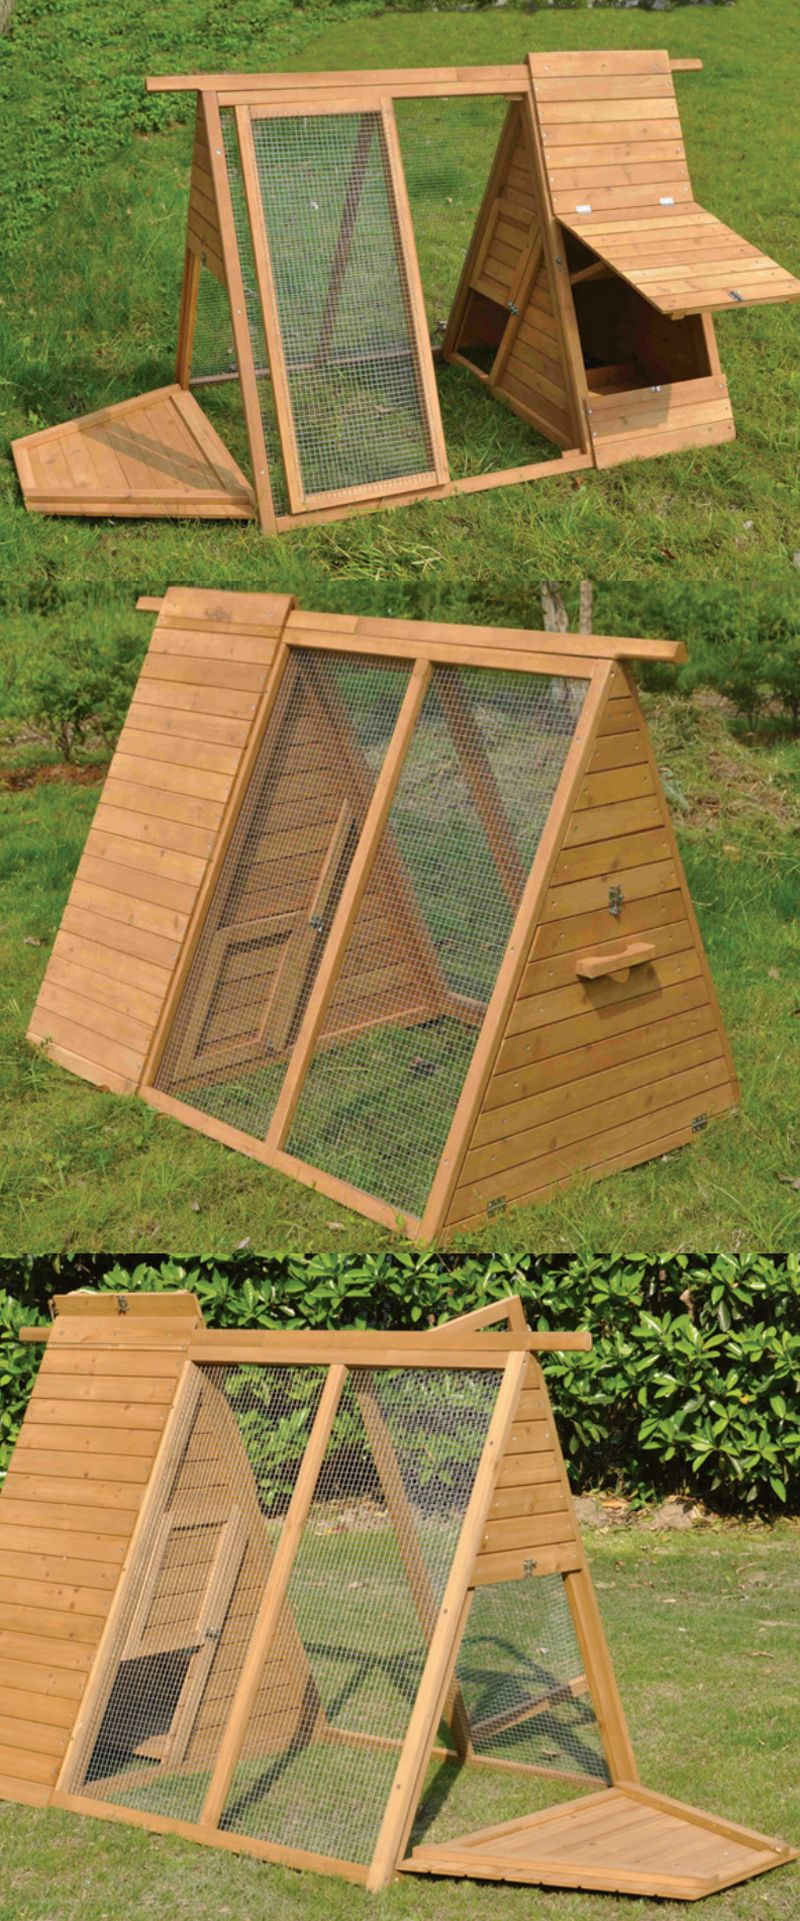 today we want to present you 15 creative modern a frame chicken coop designs - A Frame Chicken House Plans